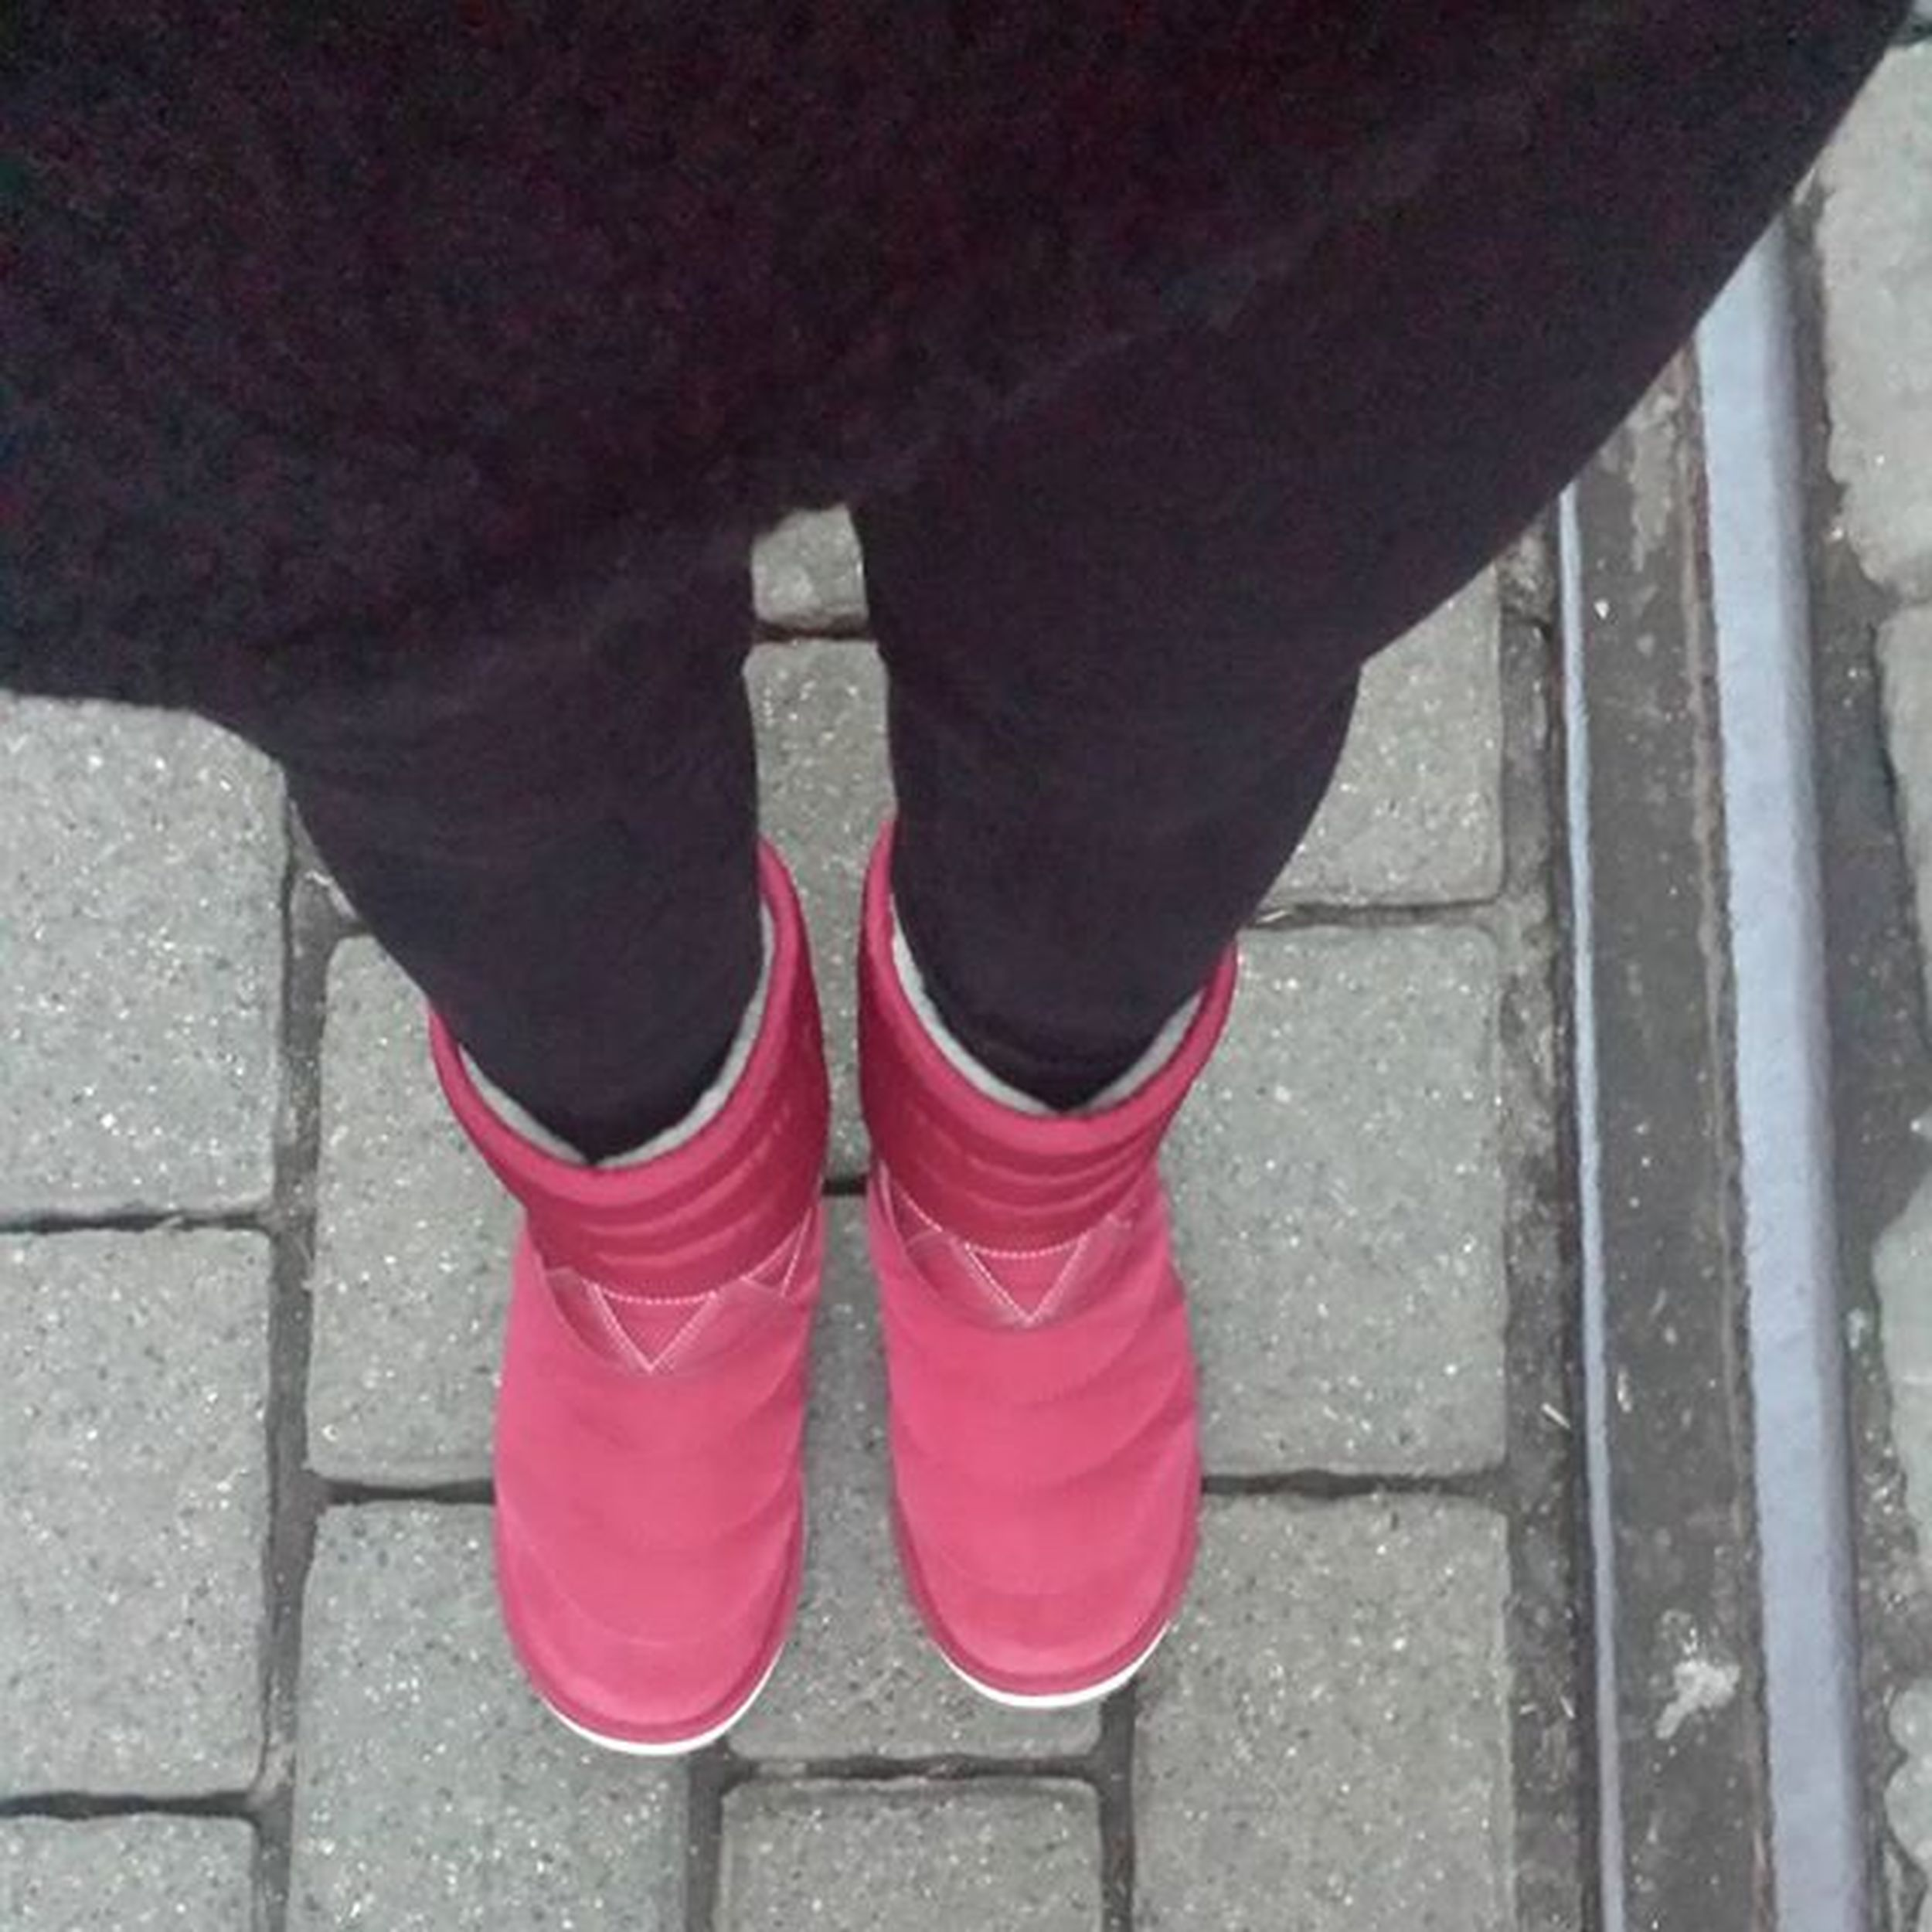 Kein verdammter ❄❄❄ in Sicht. Anyway! Die Boots wollen getragen werden! 🙅 Winter Nosnow Nosnowhere Hamburg Cold Boots Red Warm Shoes